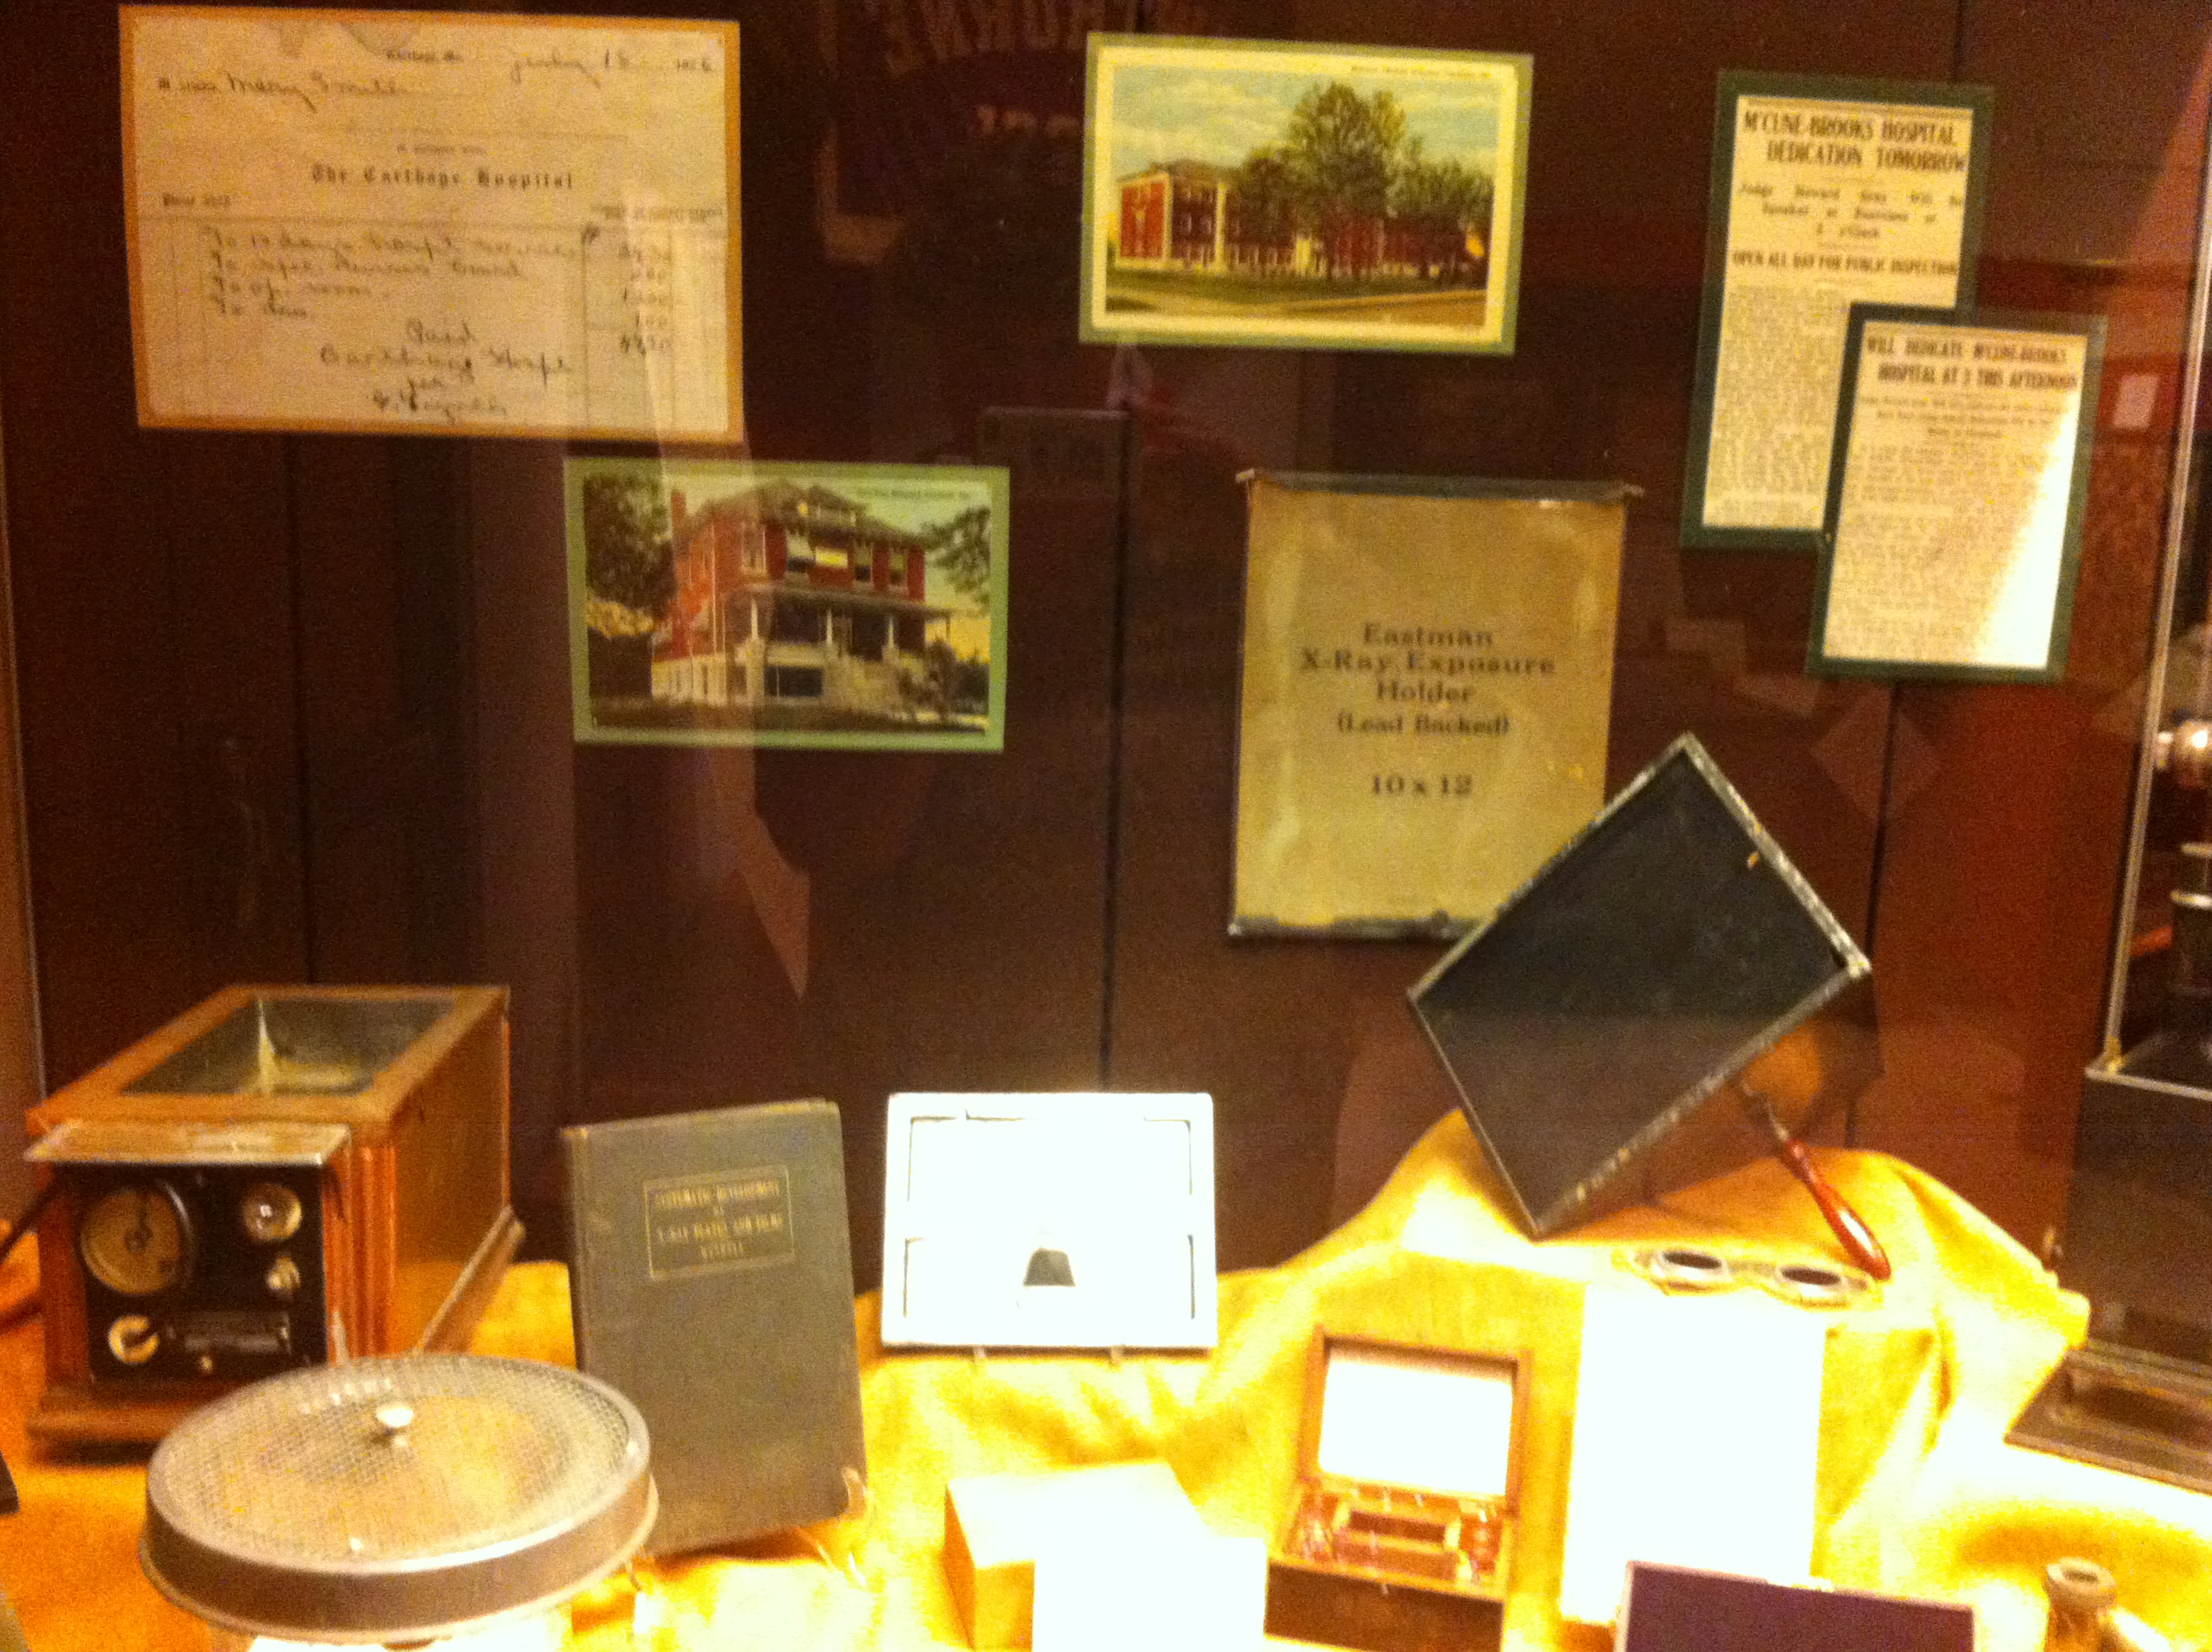 2017 Exhibit case featuring items used at the former Carthage Hospital and McCune-Brooks Hospital.